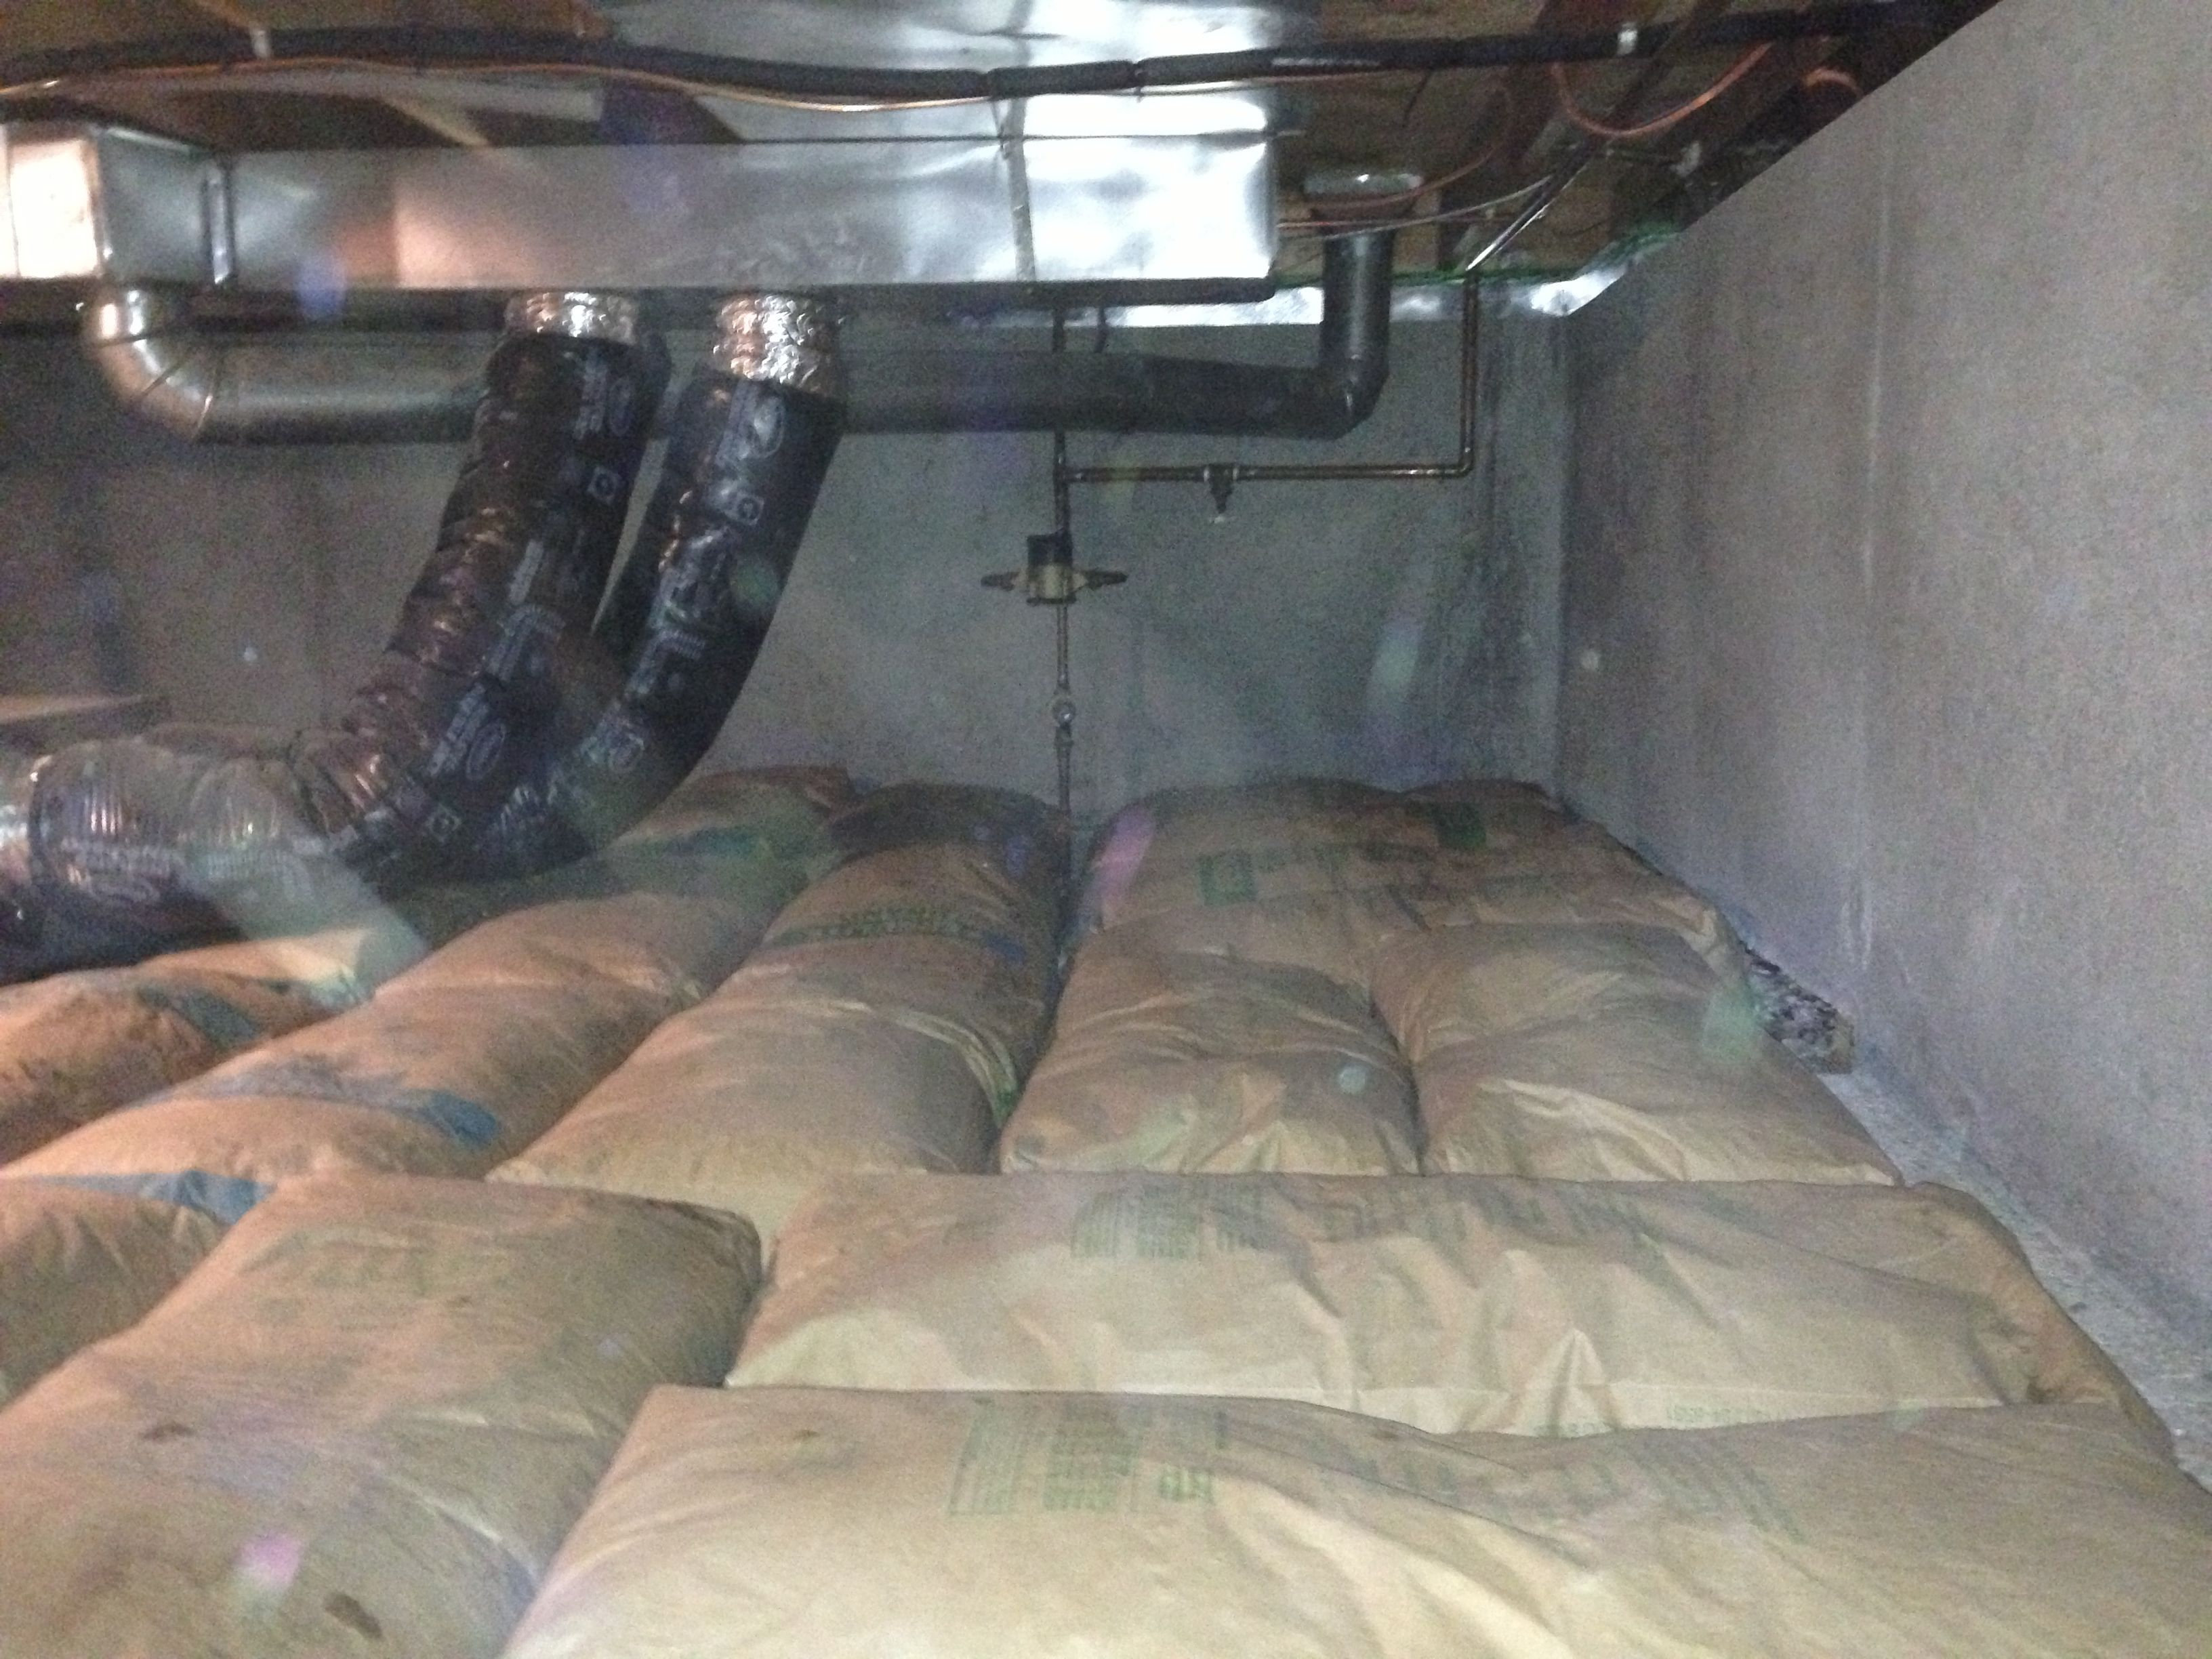 Insulation Crawl Space Bags Of Perlite Laid Out On Crawl